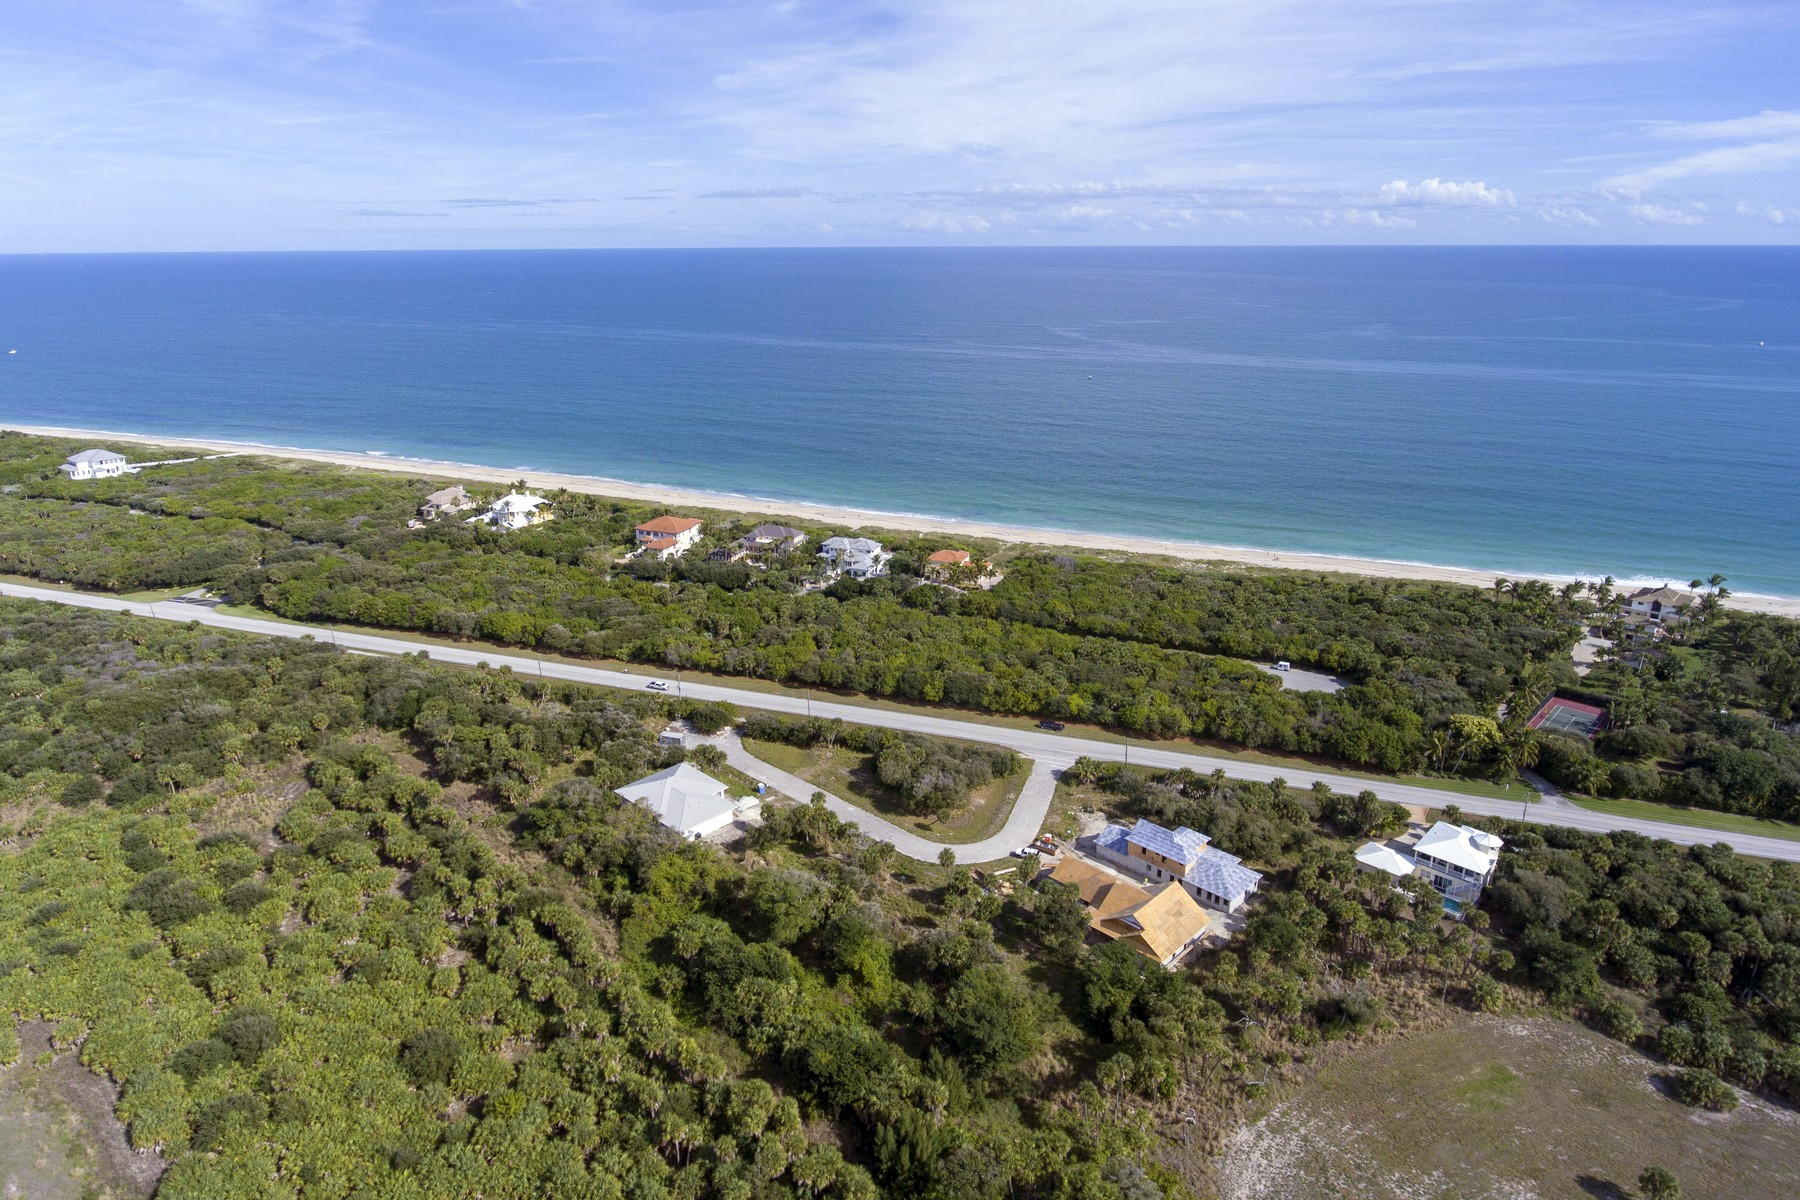 Land for Sale at The Reserve at Pelican Island 11785 Brown Pelican Way Vero Beach, Florida 32963 United States